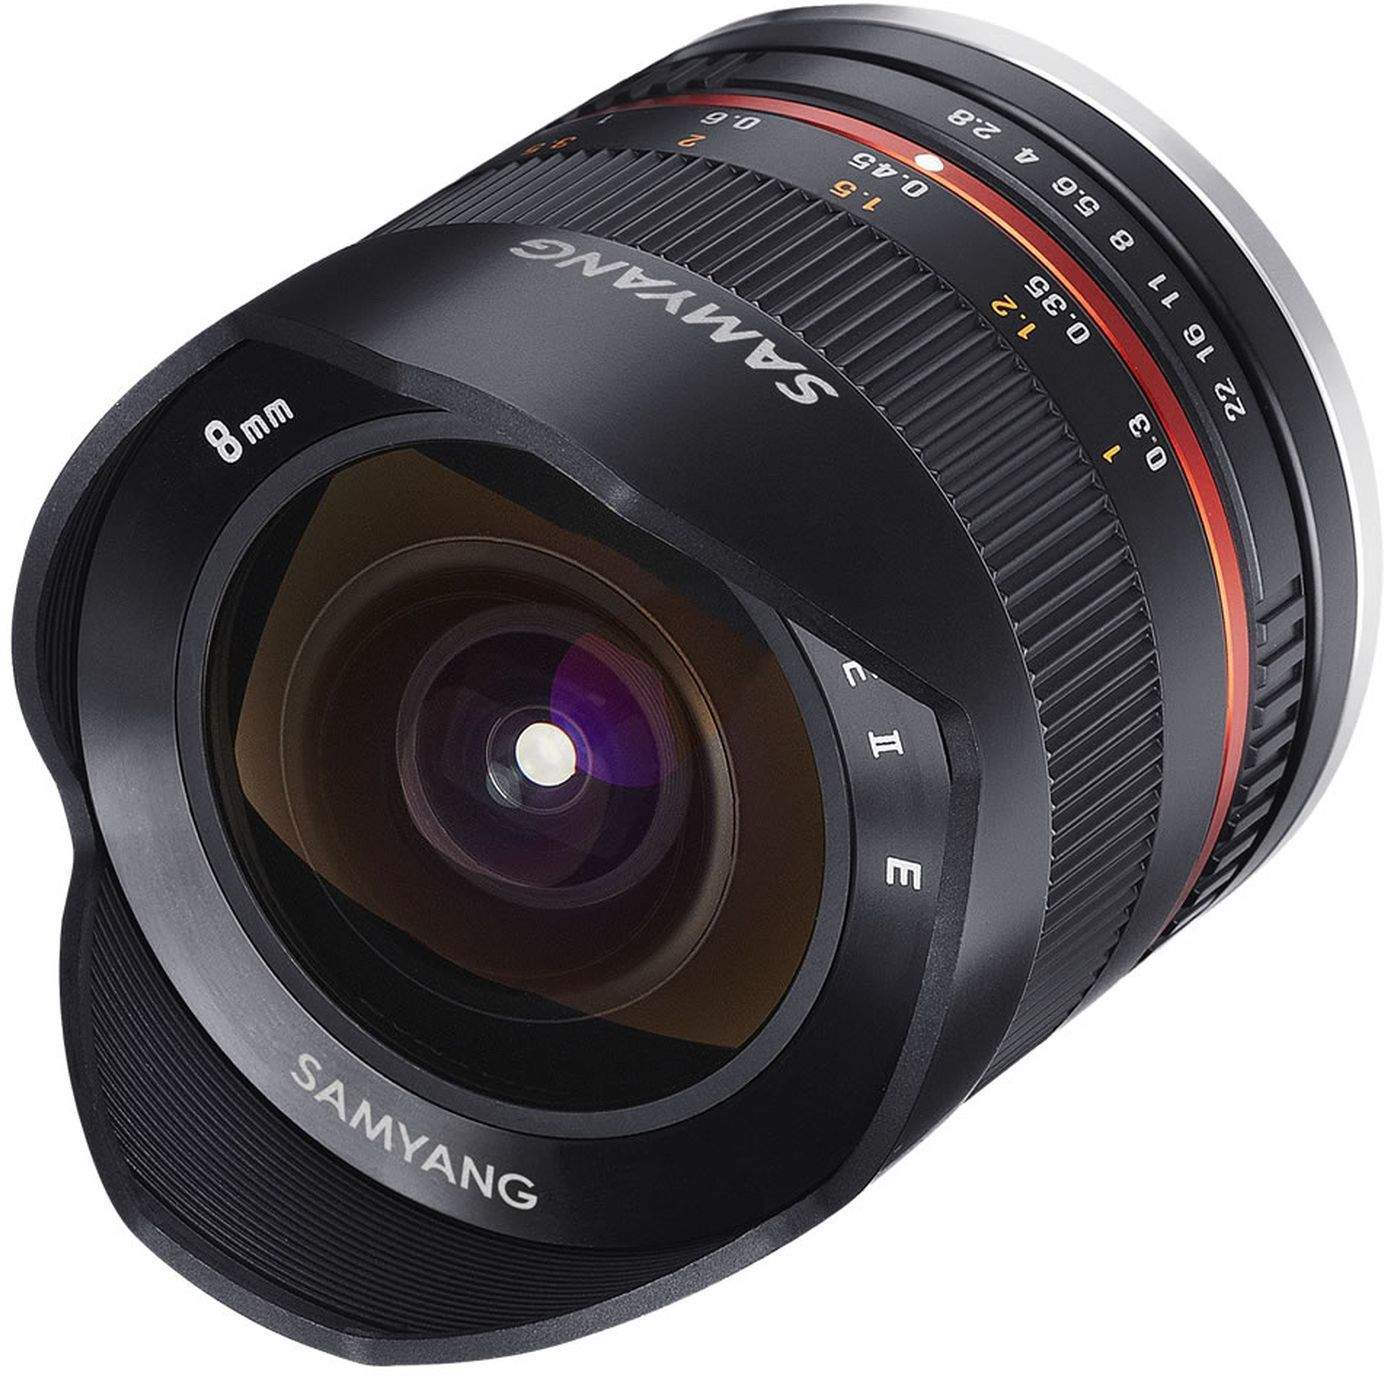 Samyang 8mm F2.8 Fisheye UMC II APS-C Sony E Camera Lens - Black